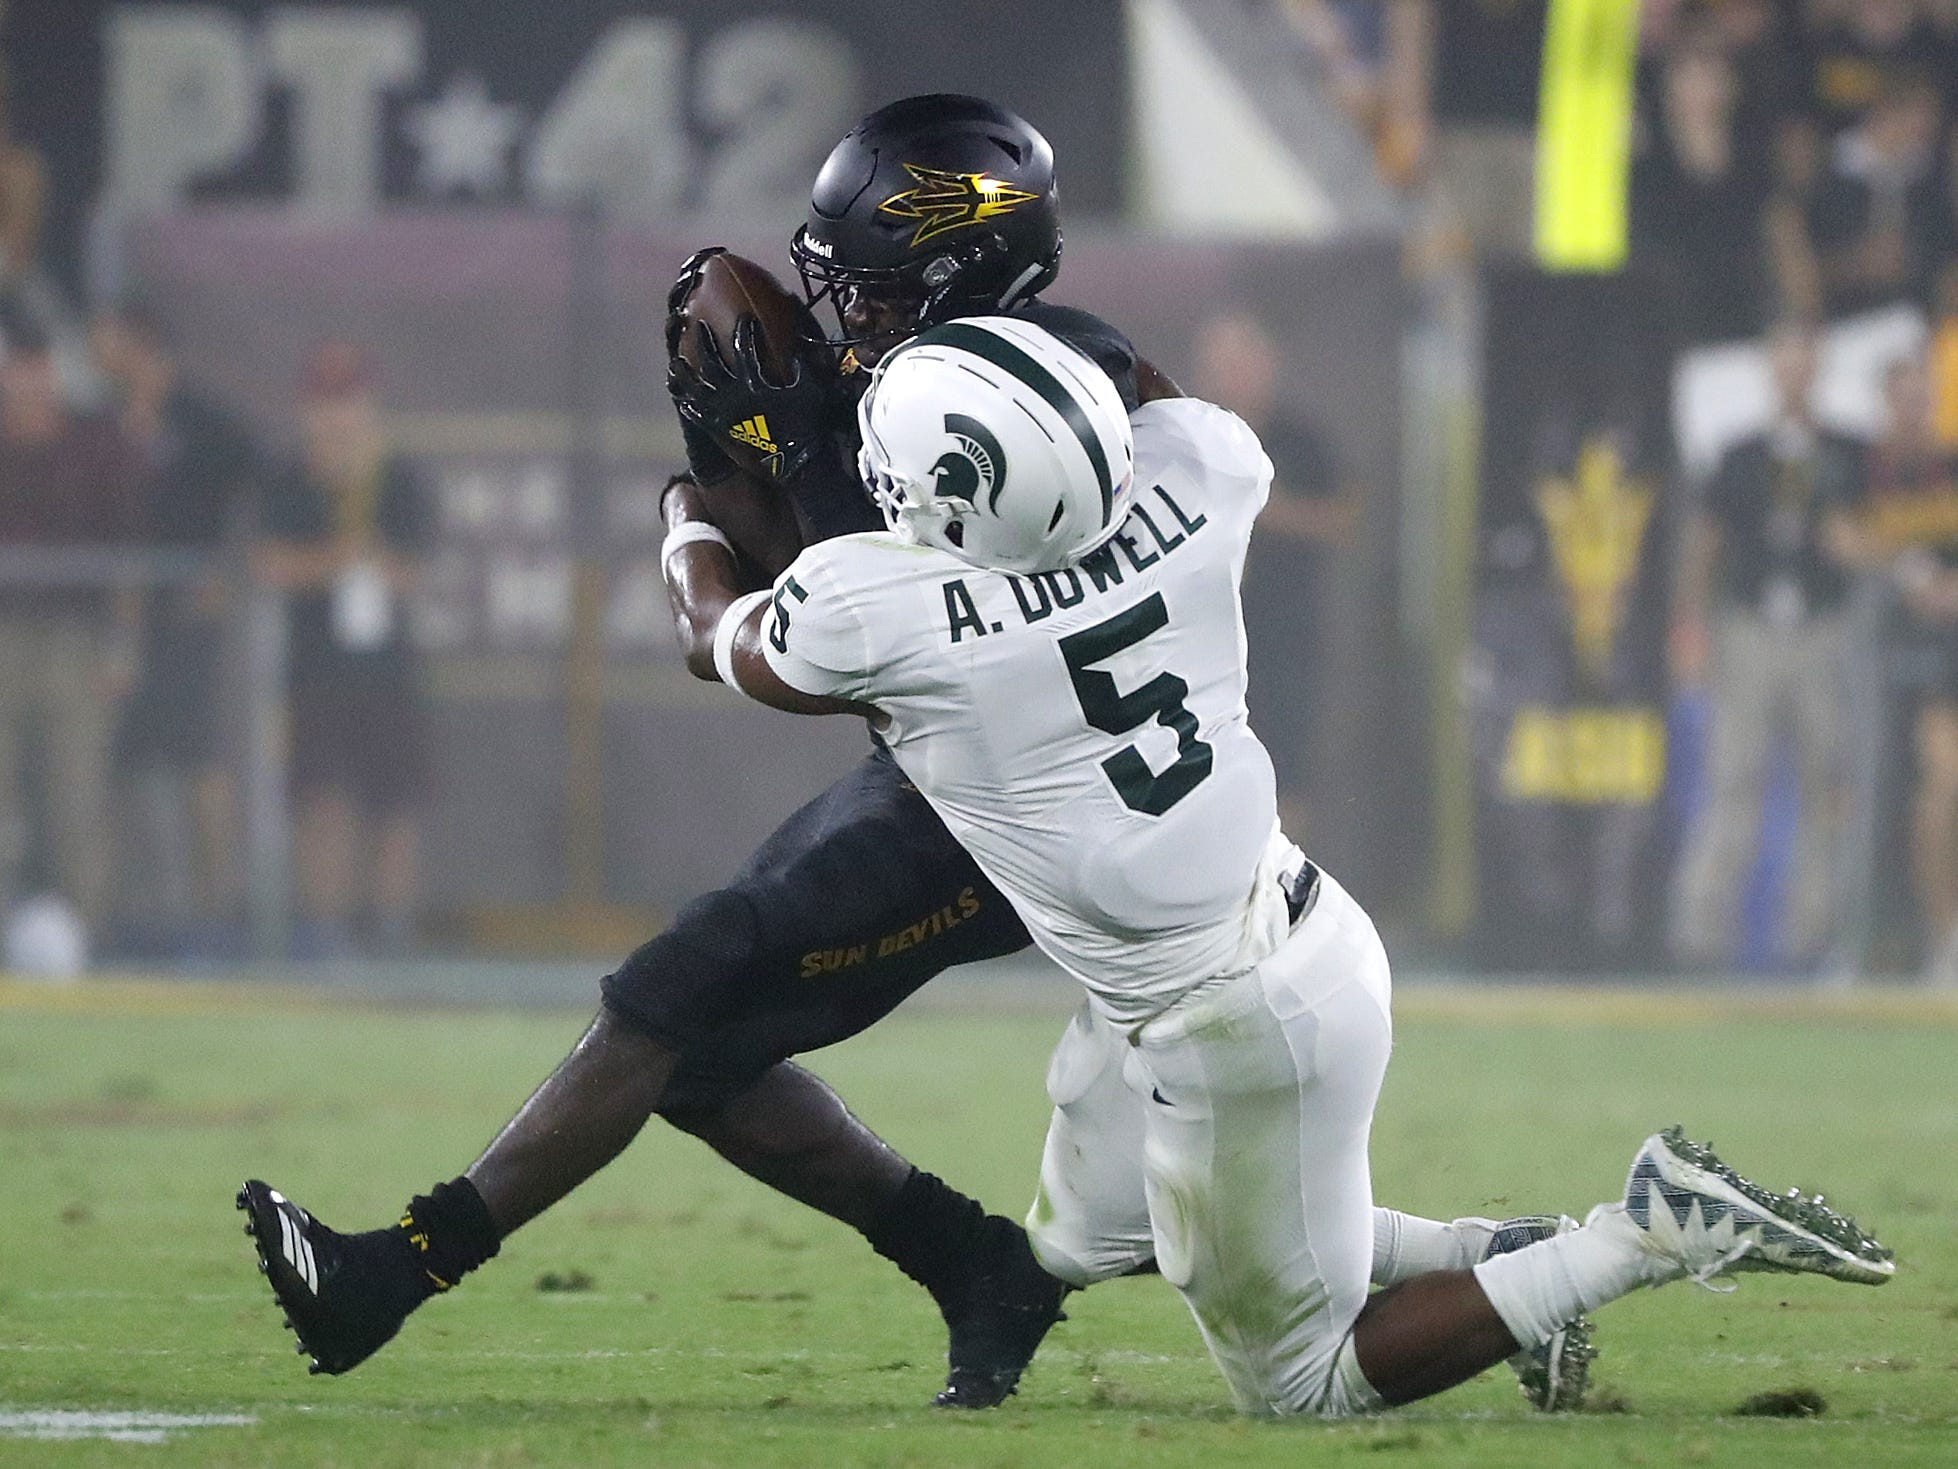 Michigan State's Andrew Dowell (5) tackles Arizona State Sun Devils running back Eno Benjamin (3) after a catch during the second quarter at Sun Devil Stadium in Tempe, Ariz. on Sept. 8, 2018.